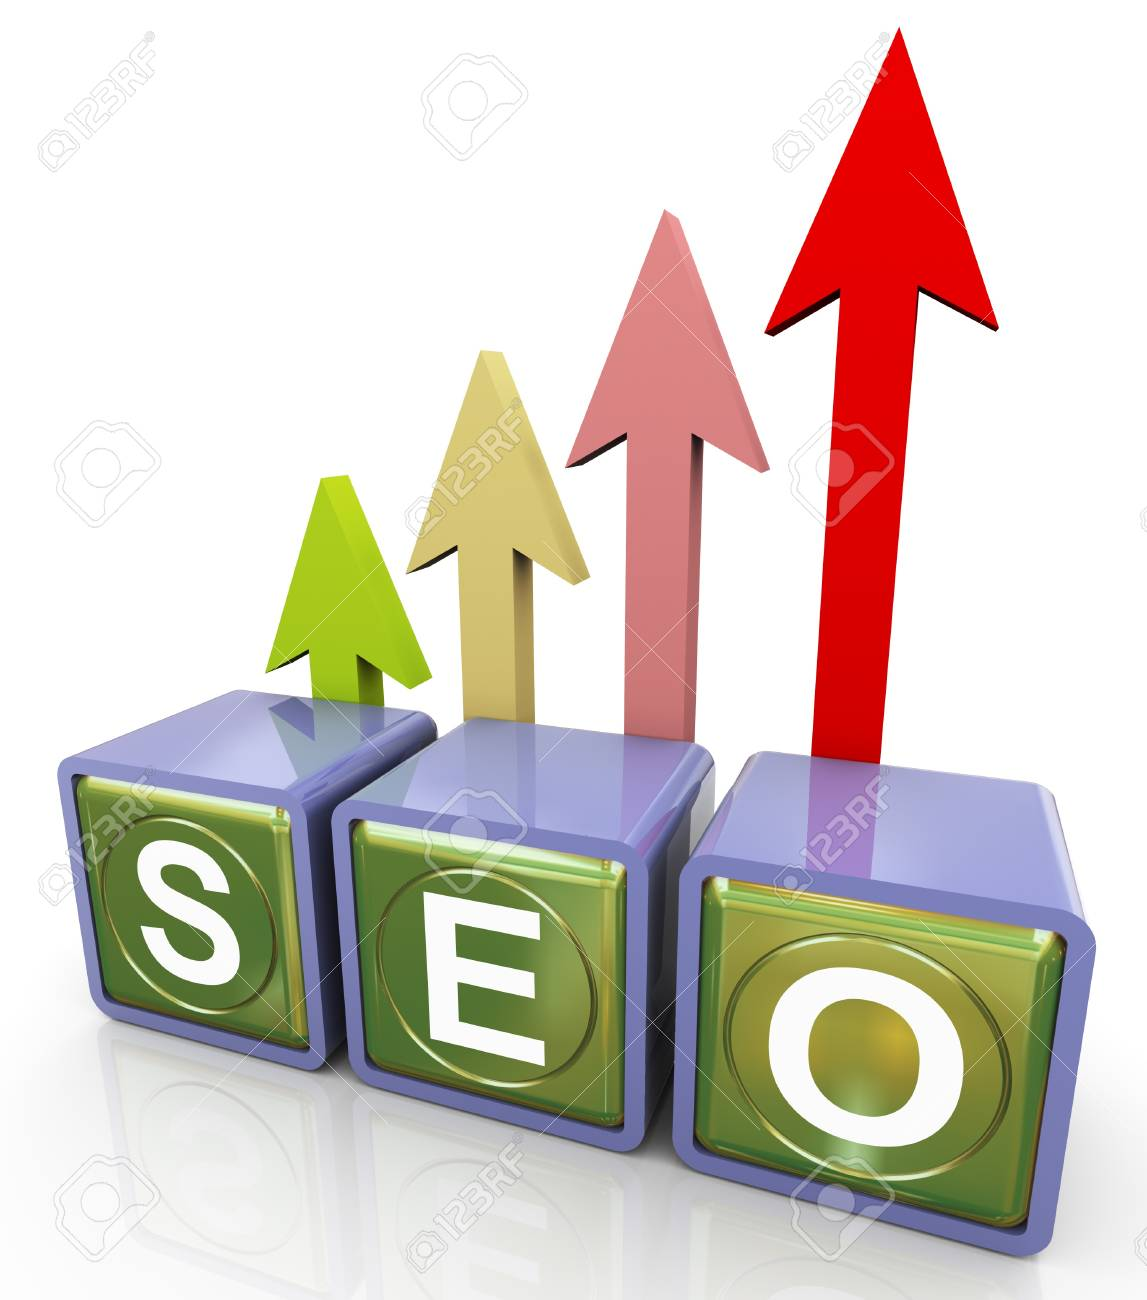 3d reflective seo (search engine optimization ) text box with progress arrow Stock Photo - 10991957